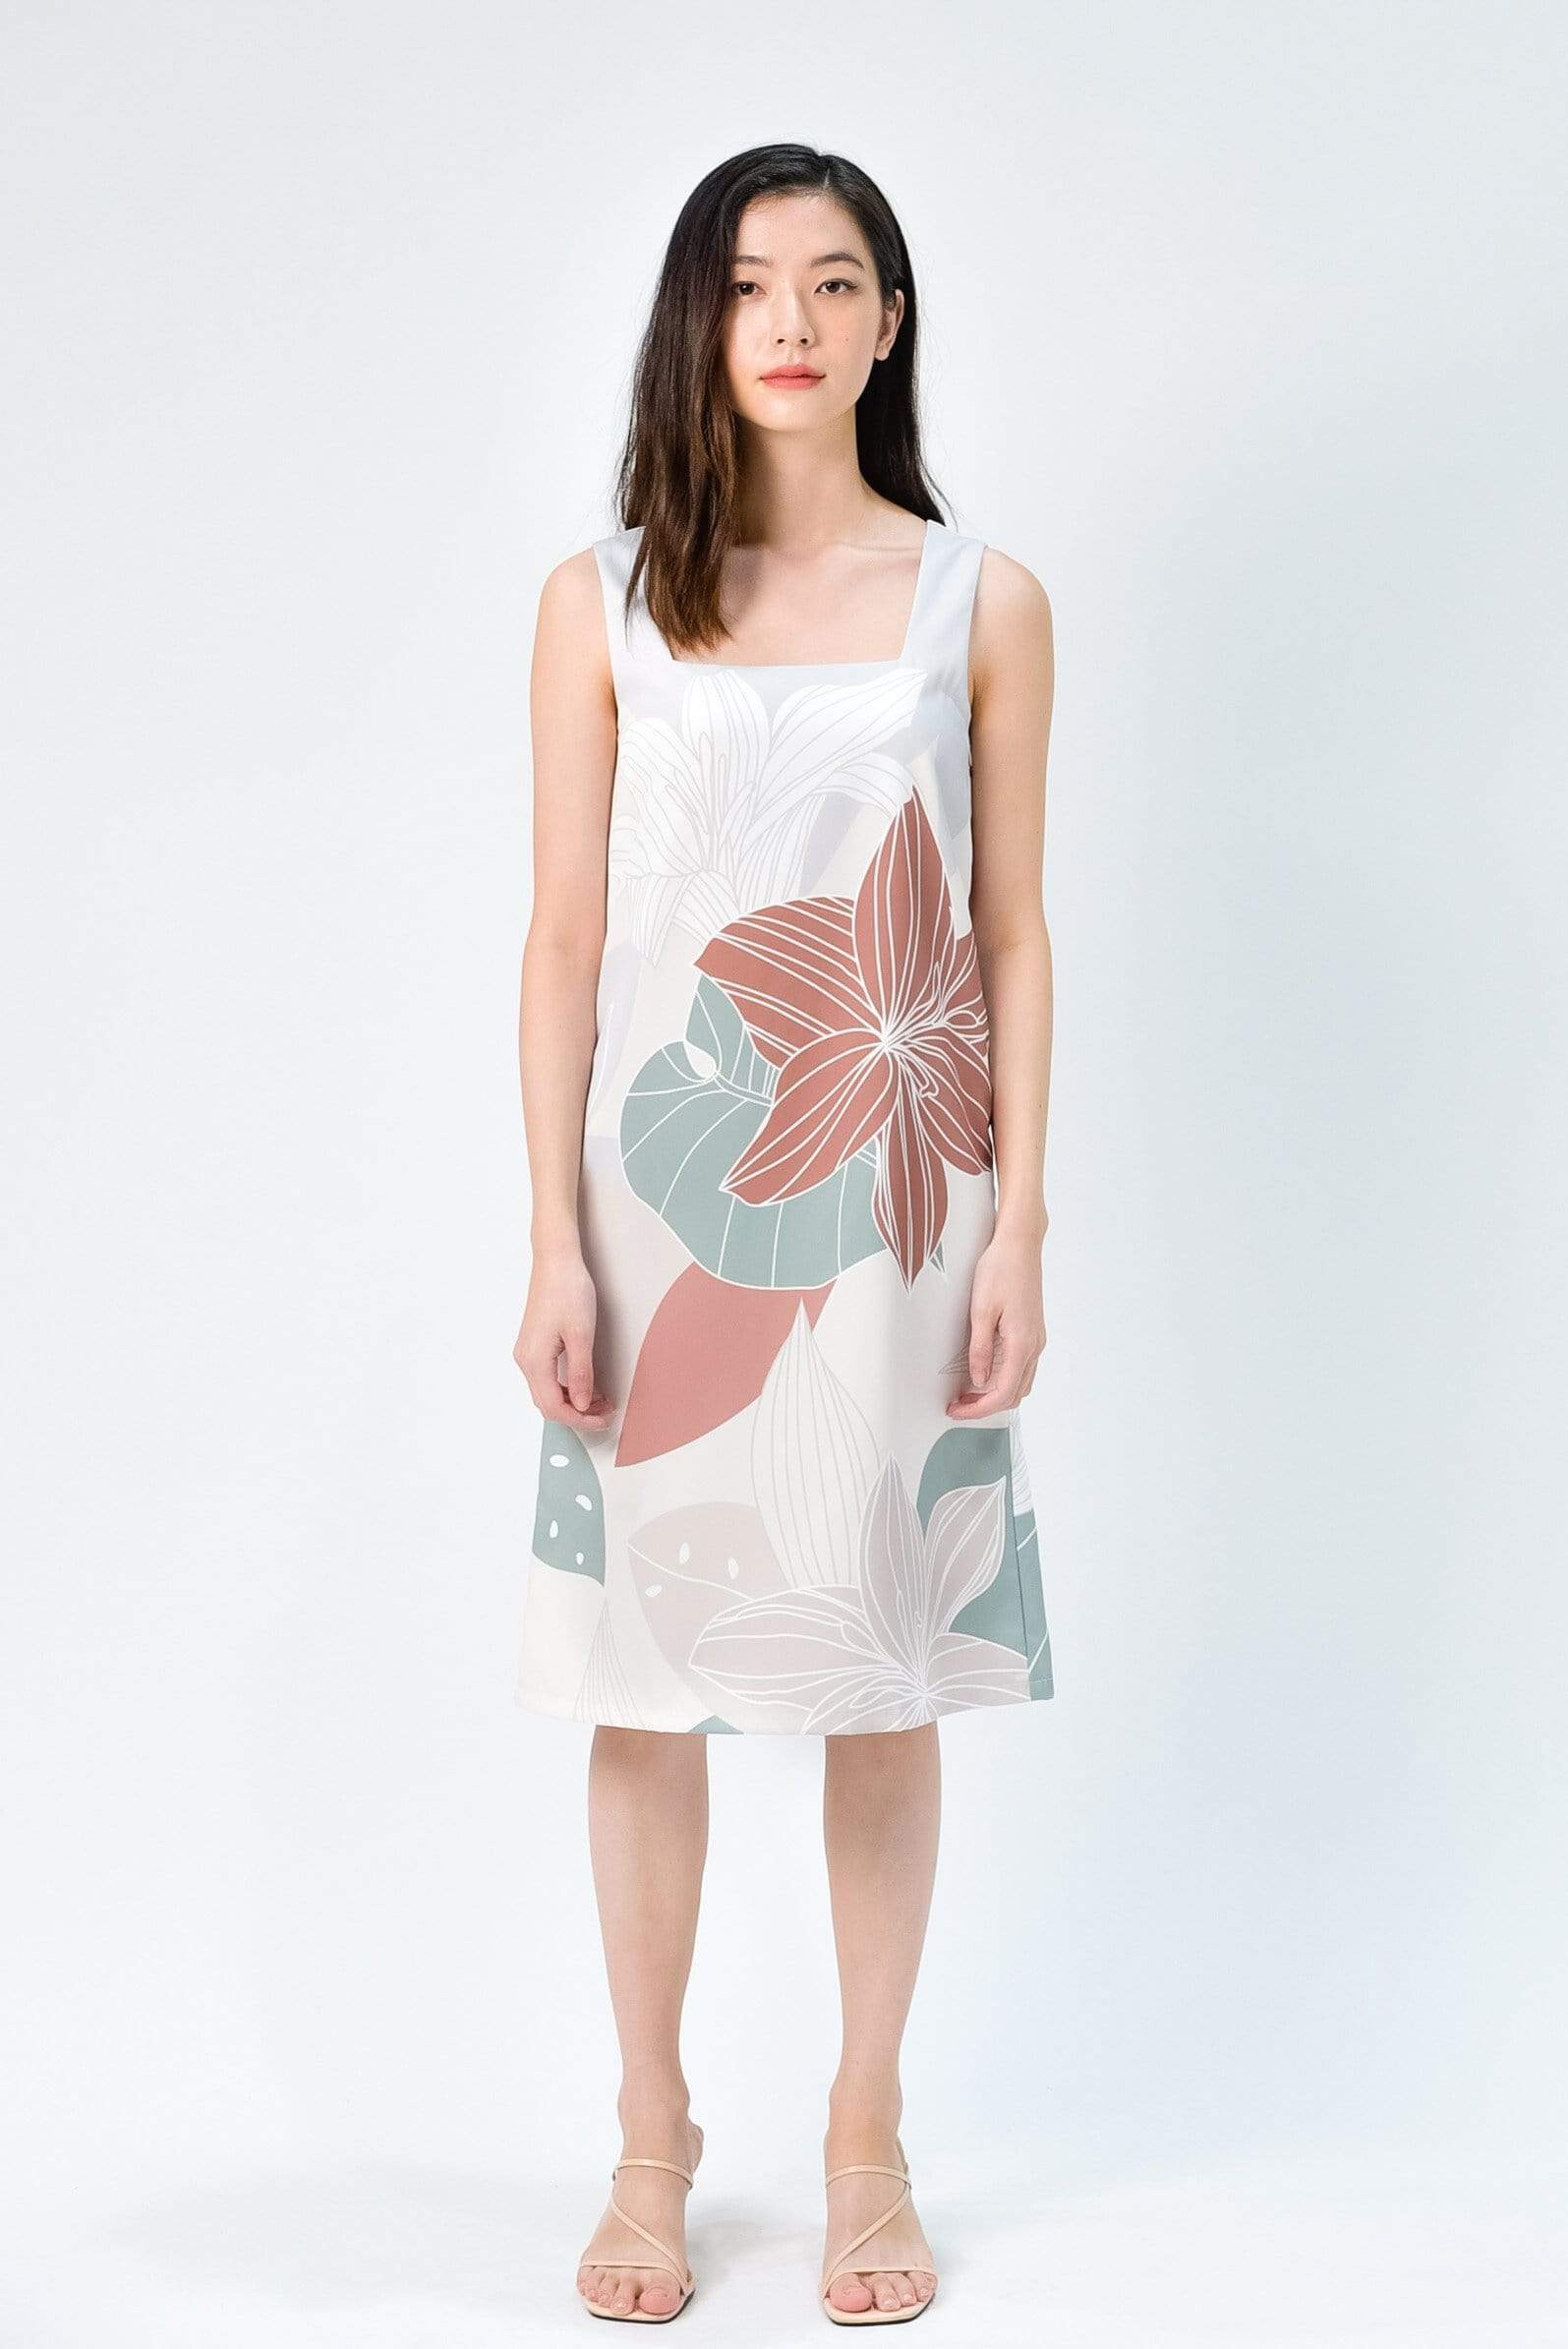 FAIRYTALE TWO-WAY SHIFT DRESS IN EARTH